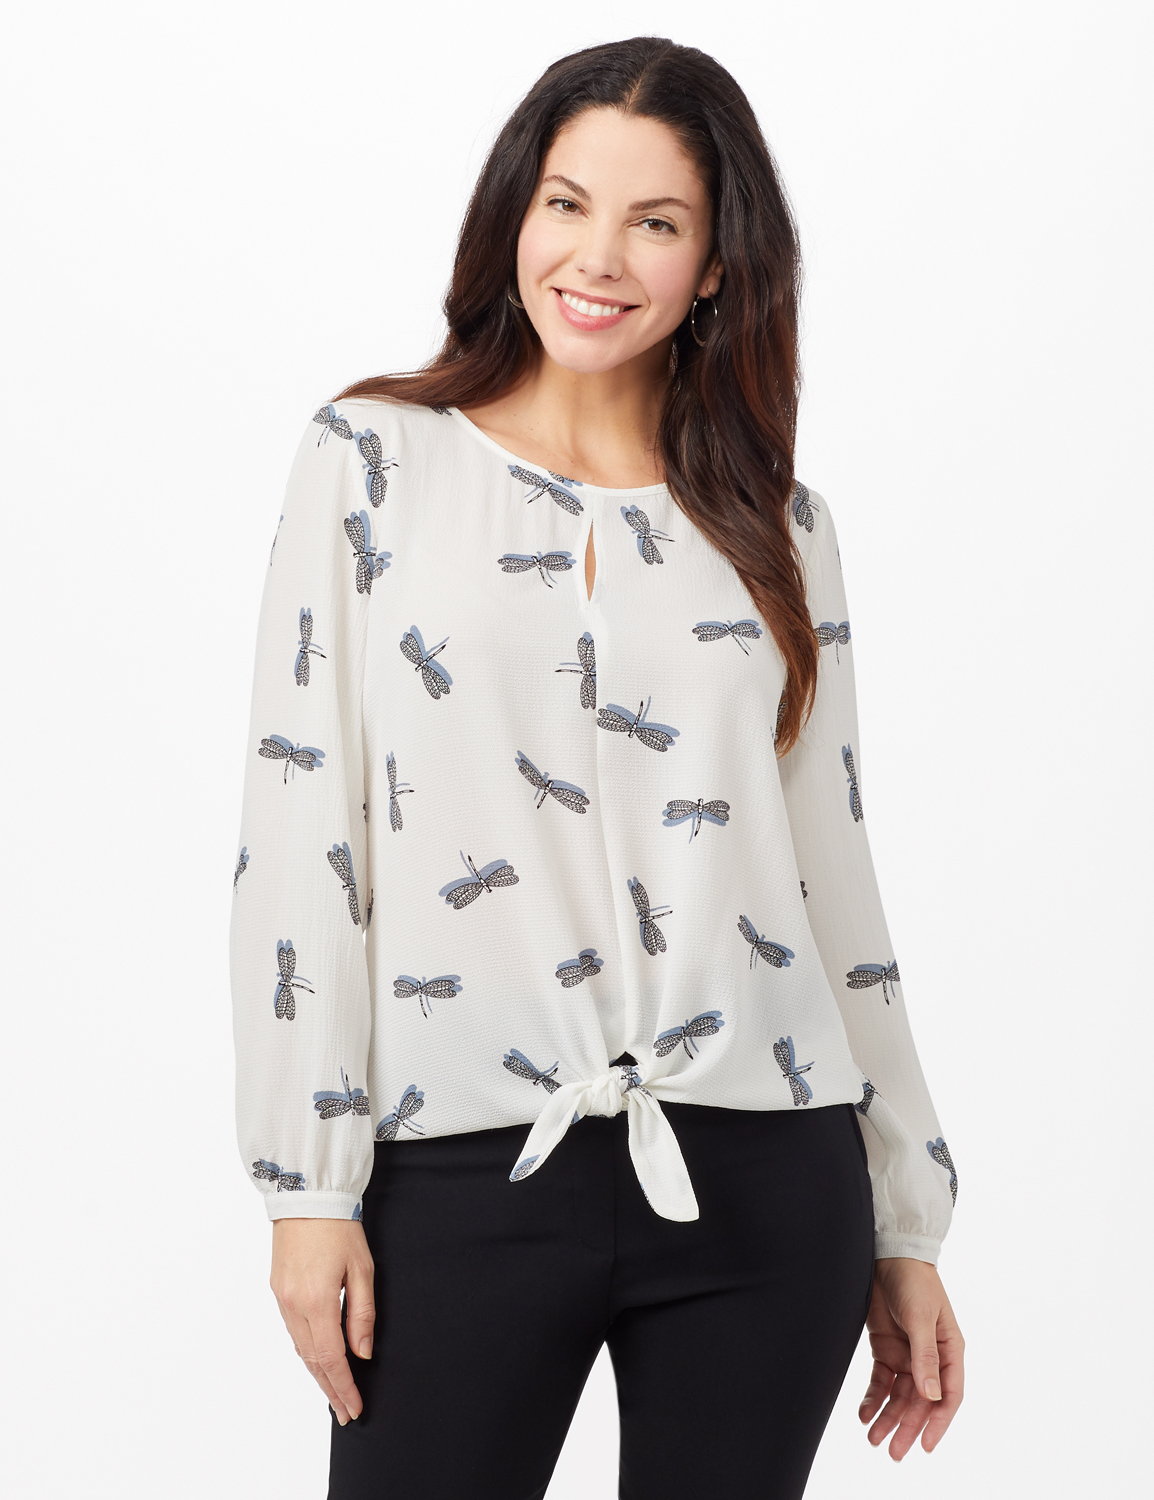 Dragonfly Texture Tie Front Blouse - Ivory - Front